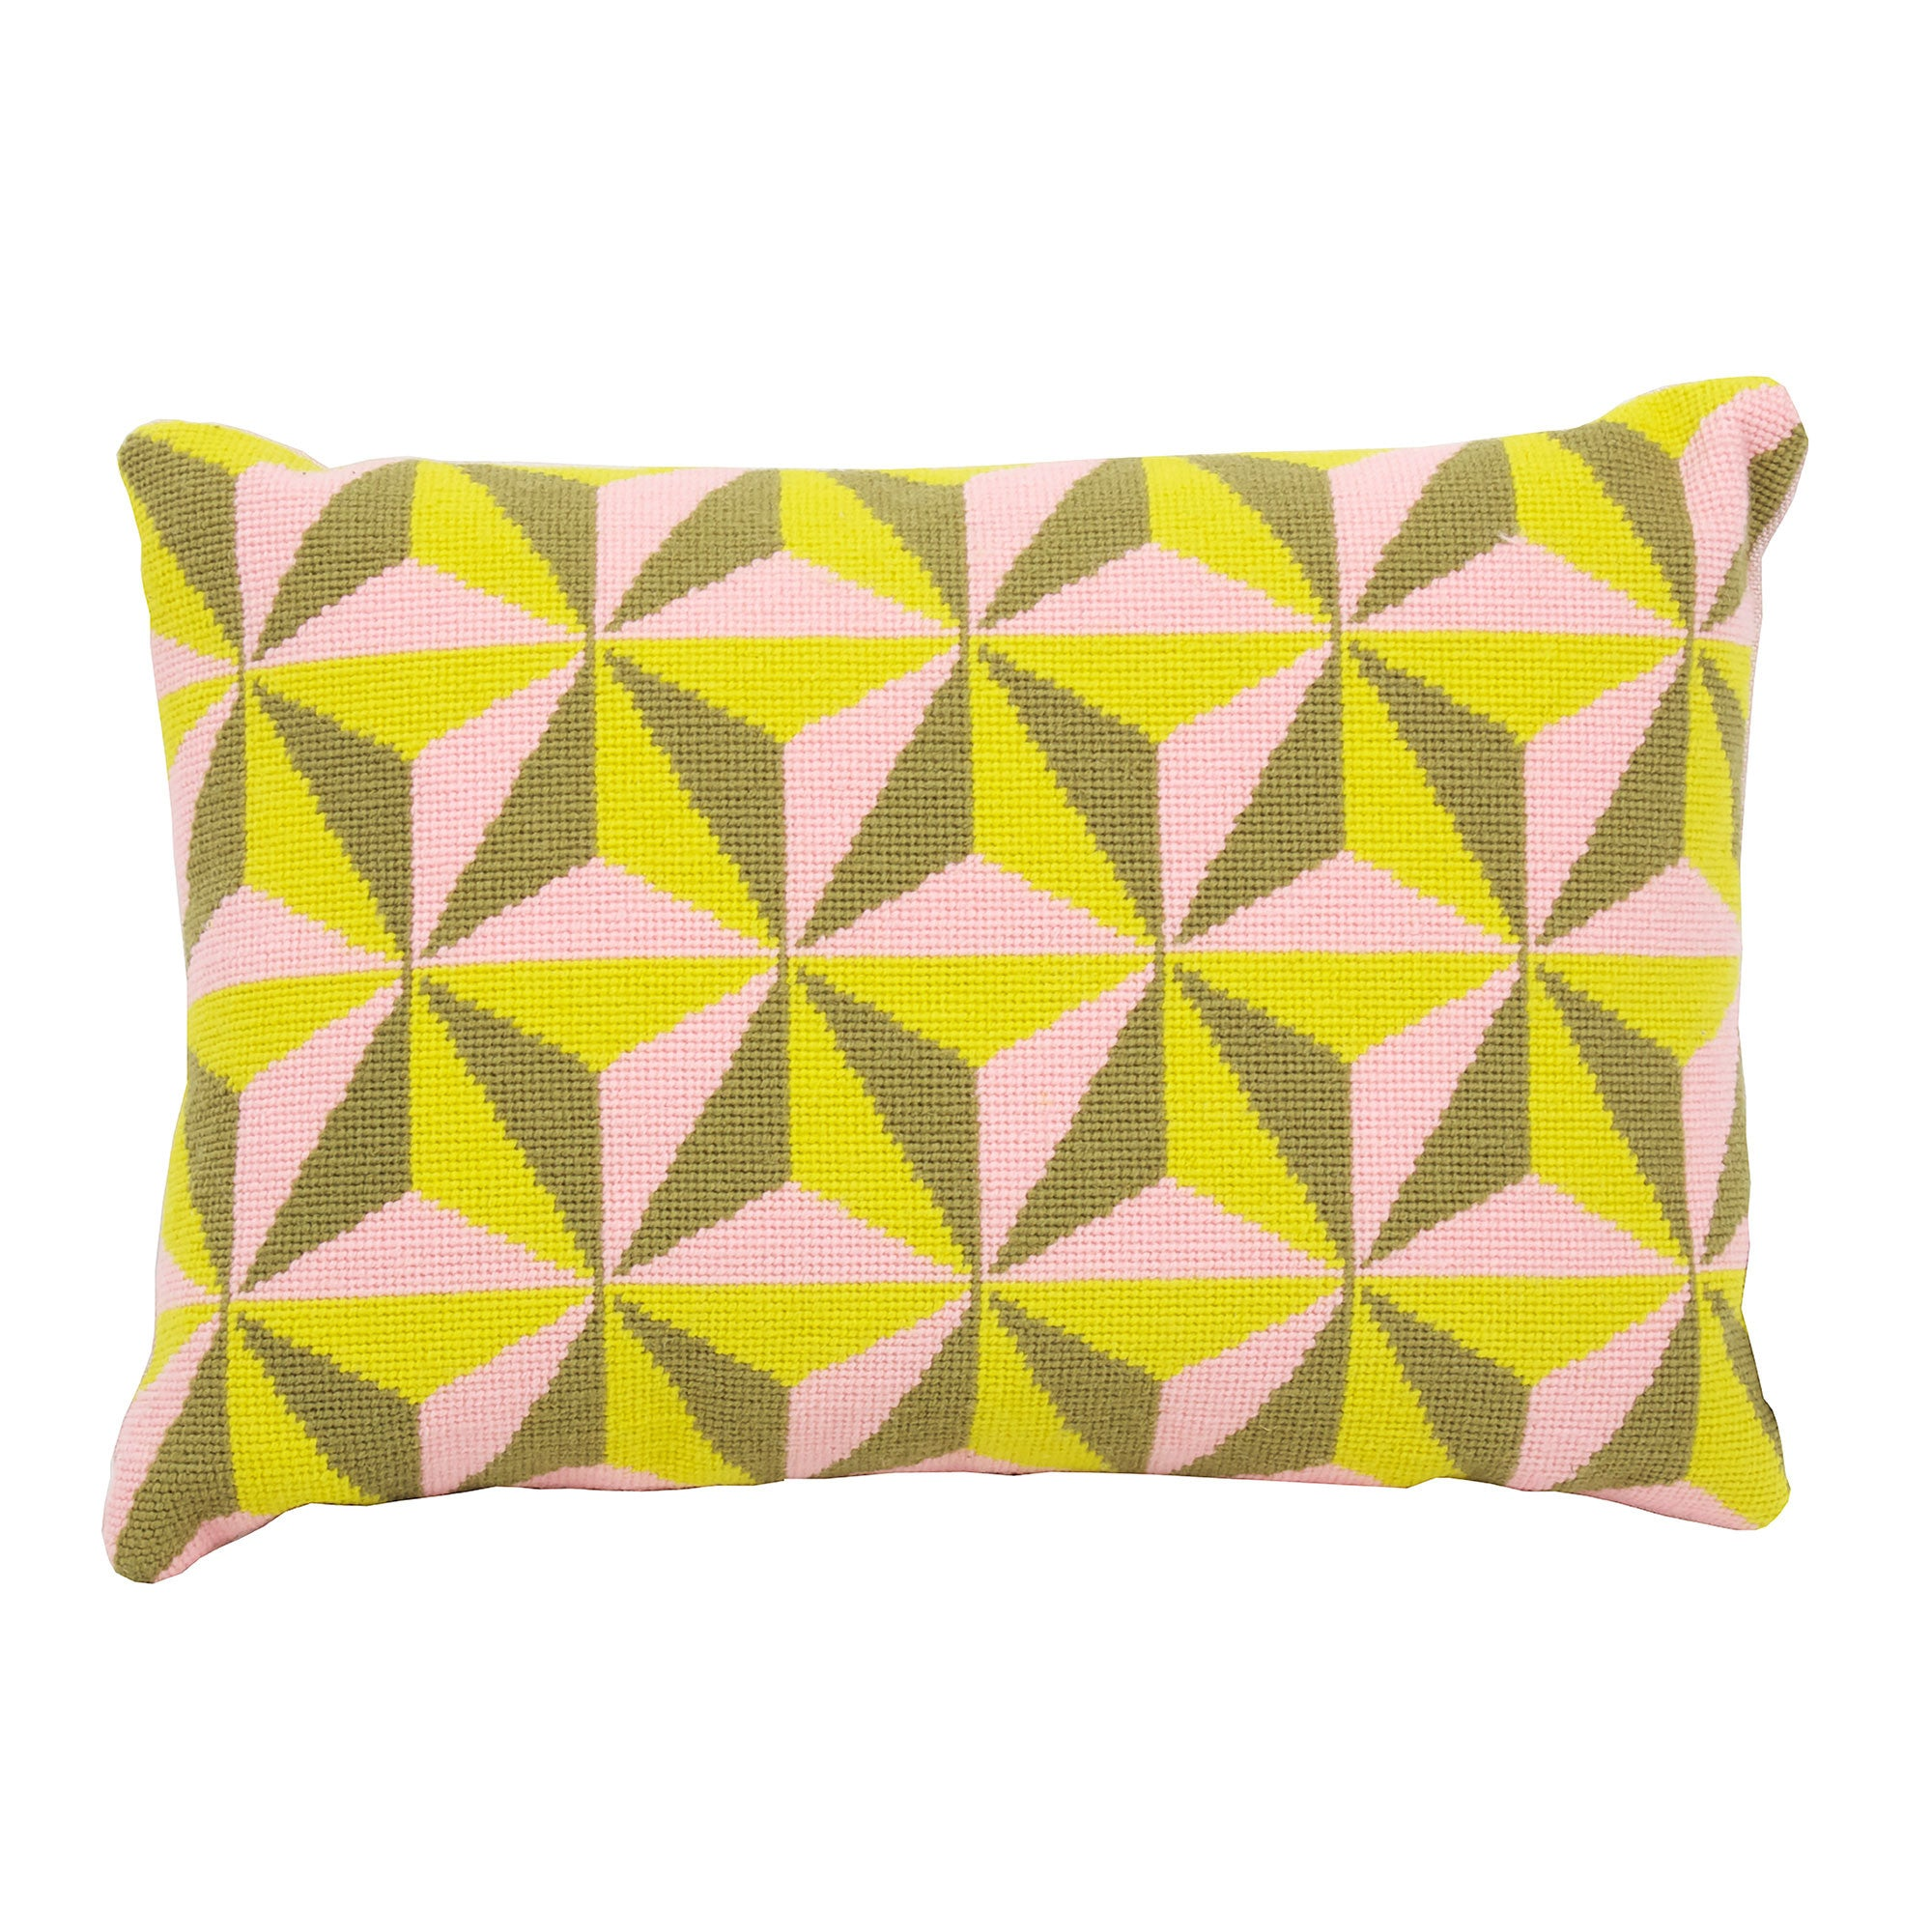 Pentreath & Hall for Fine Cell Work Tetrahedron Cushion Pink and Yellow Needlepoint